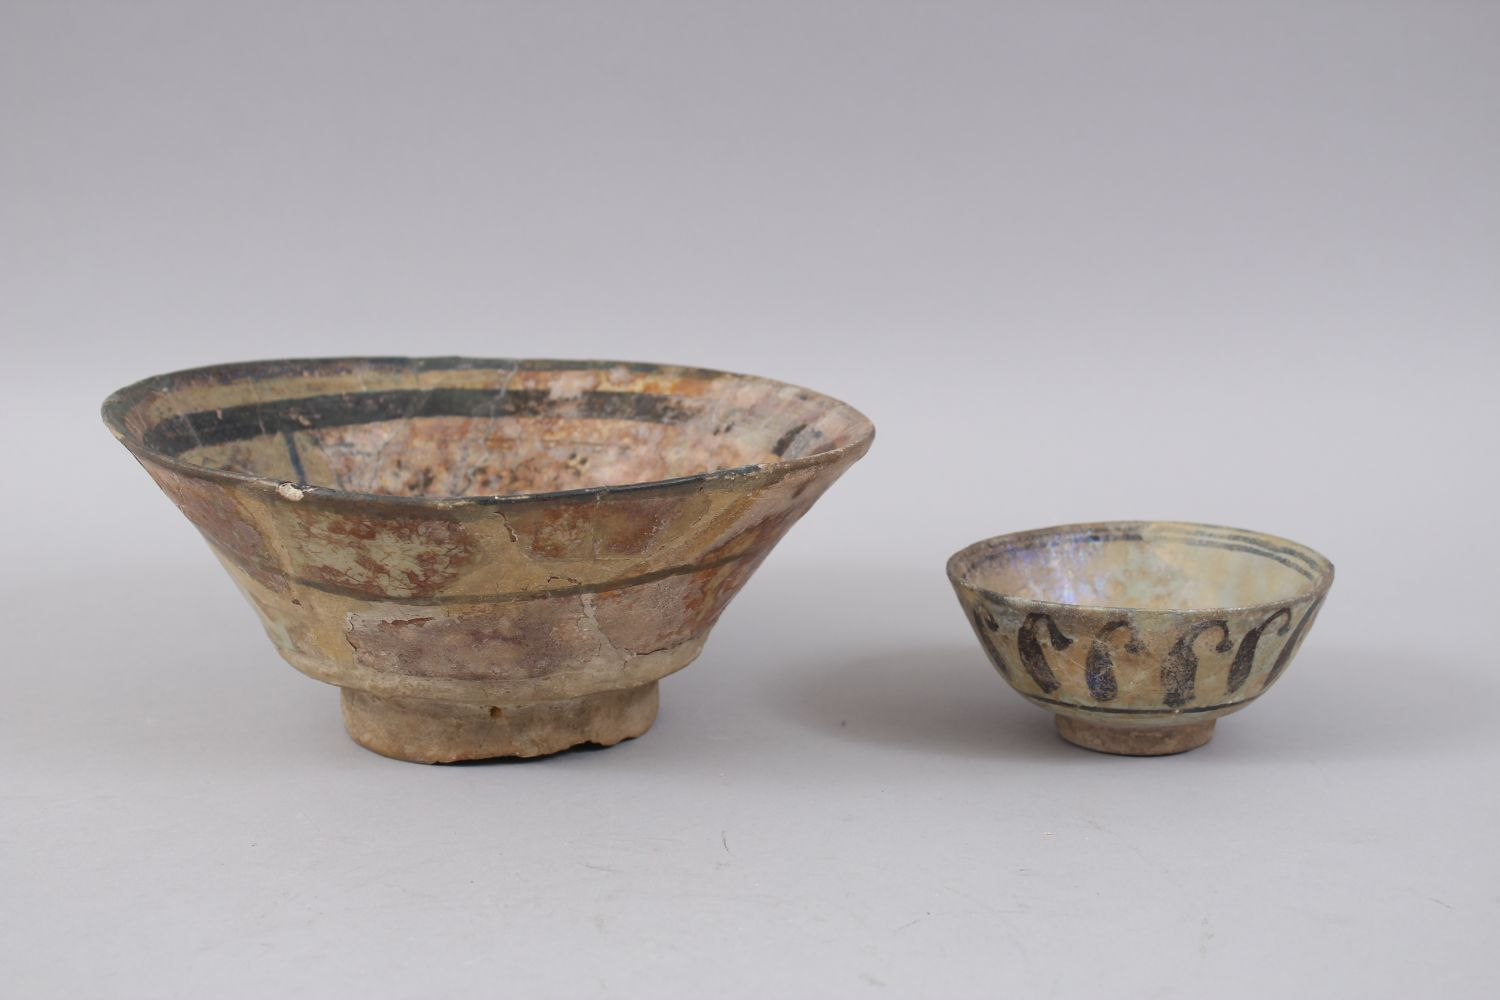 Lot 26 - TWO 12TH CENTURY SYRIAN RAQQA POTTERY BOWLS, the larger bowl with a figure in the centre 22cm